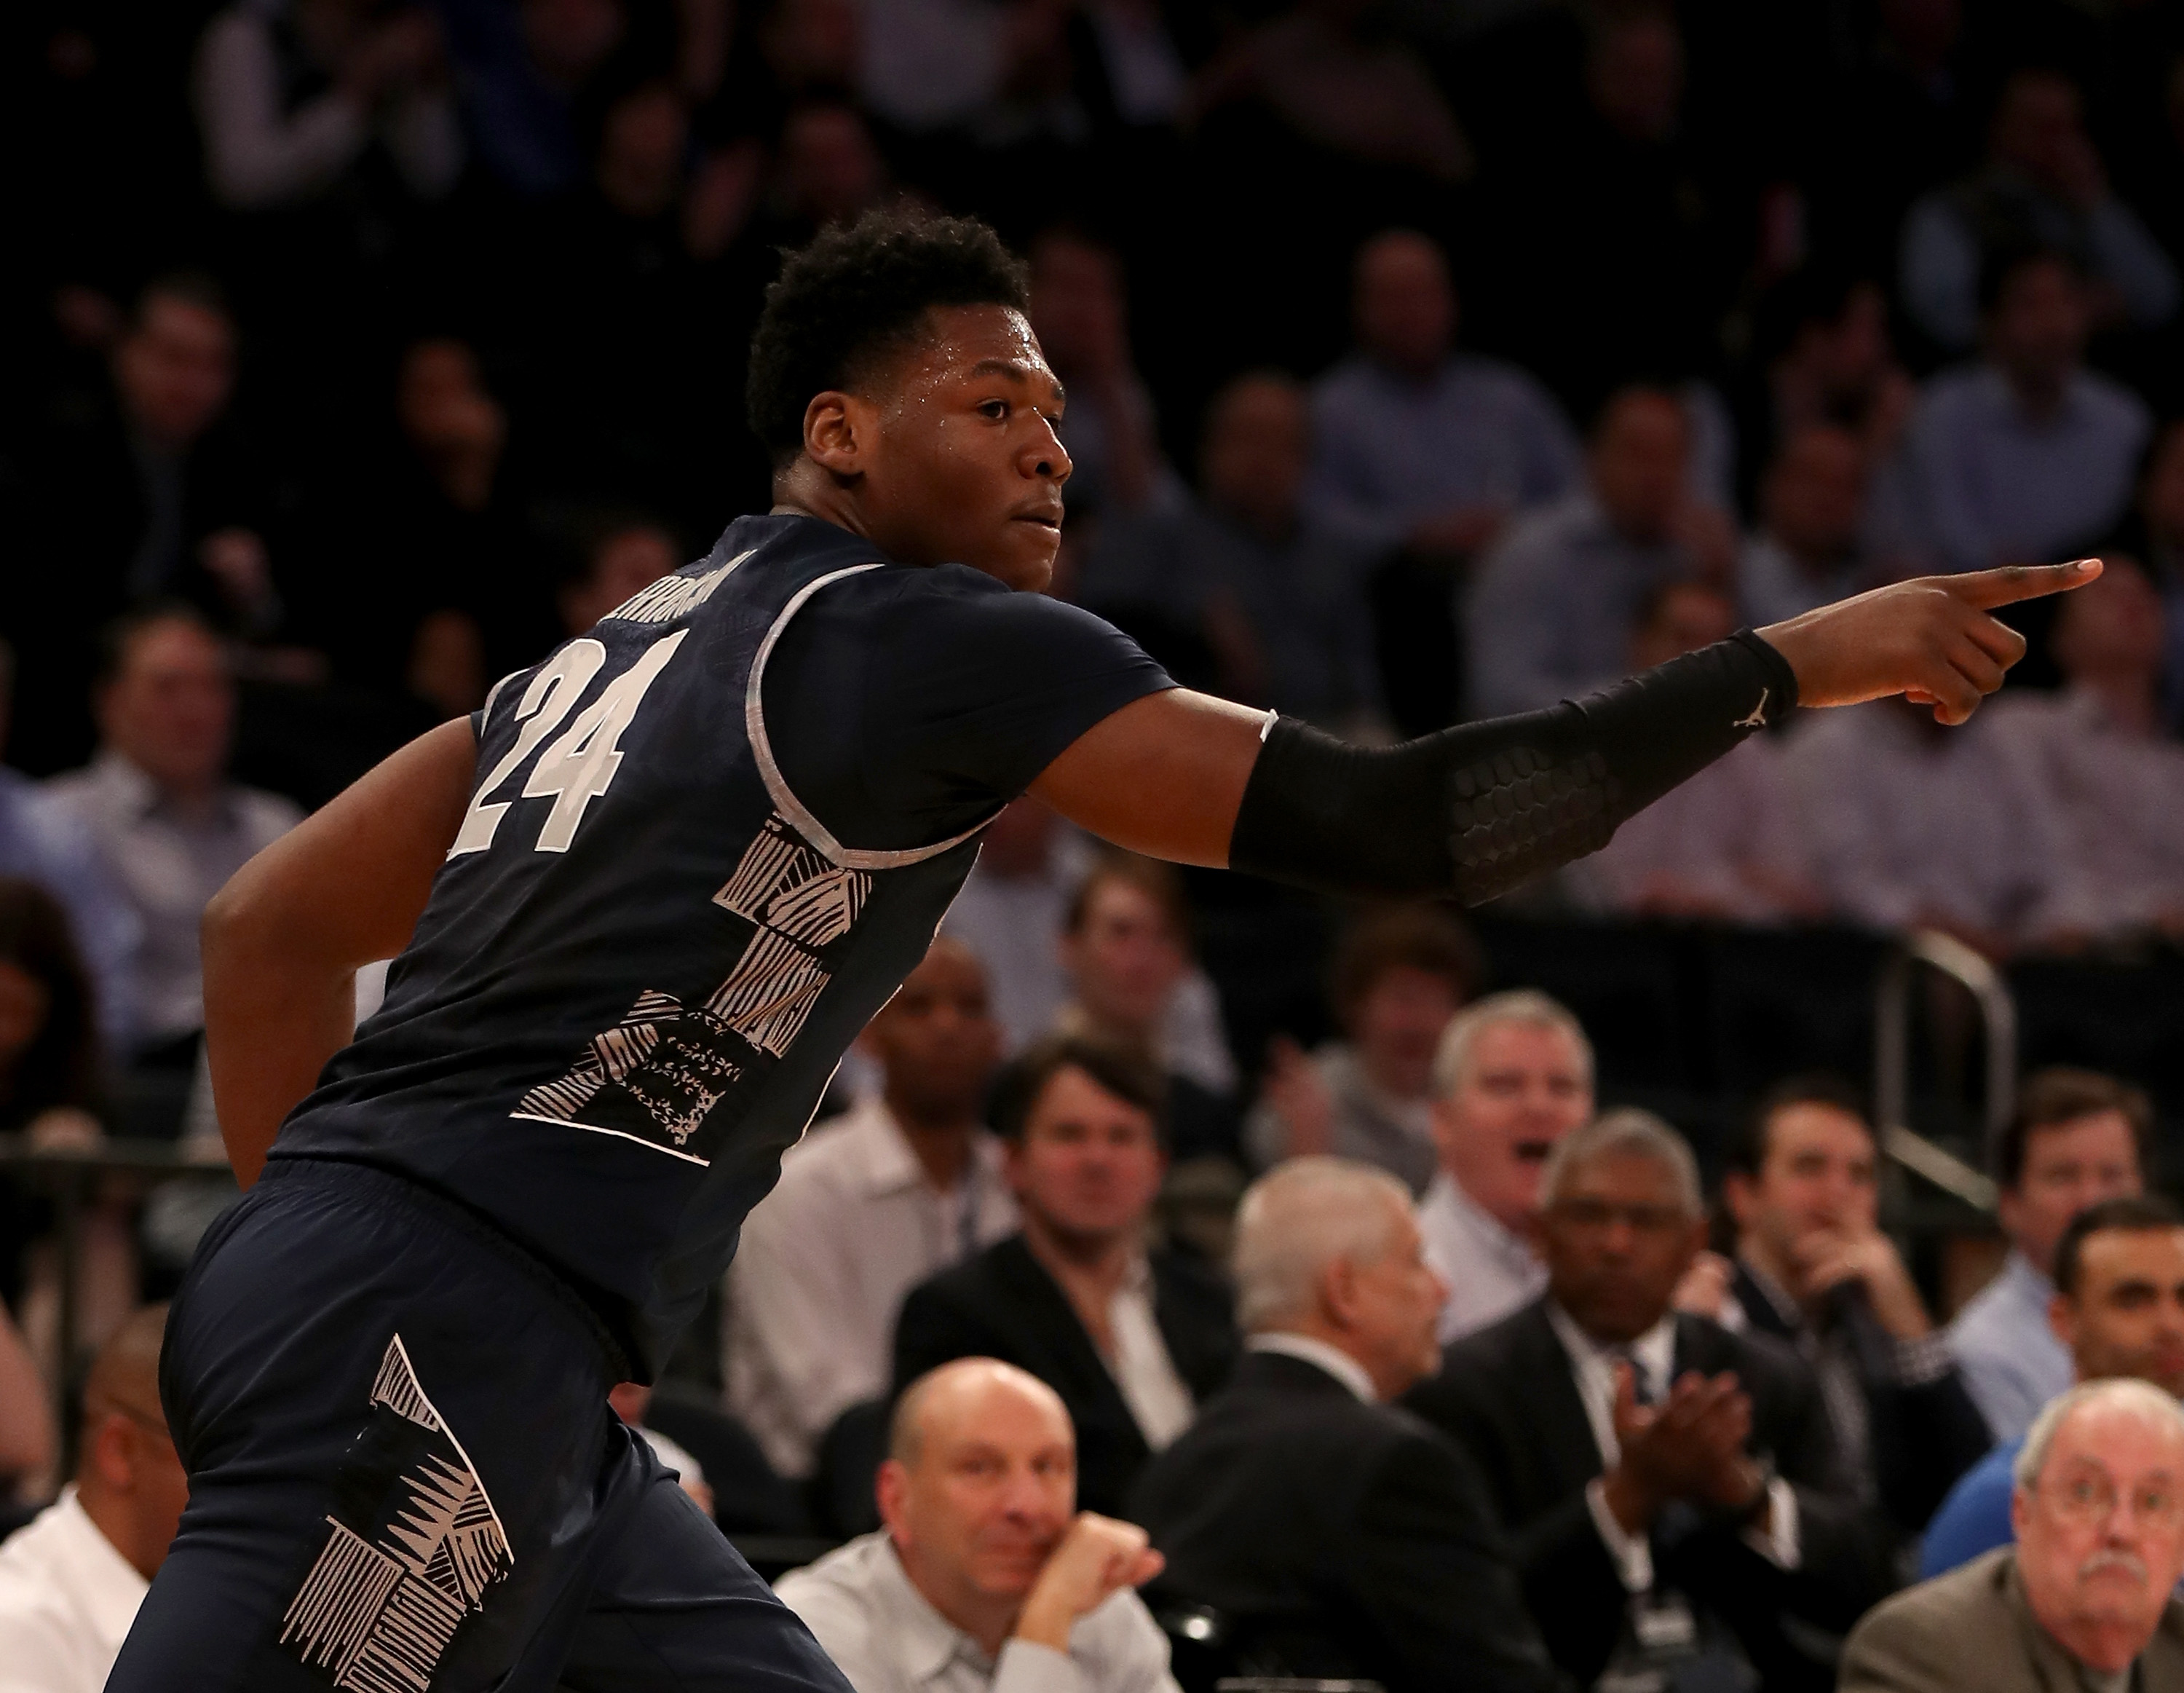 NEW YORK, NY - MARCH 10: Marcus Derrickson #24 of the Georgetown Hoyas celebrates his three point shot in the first half against the Villanova Wildcats during the quarterfinals of the Big East Basketball Tournament on March 10, 2016 at Madison Square Garden in New York City. (Photo by Elsa/Getty Images)